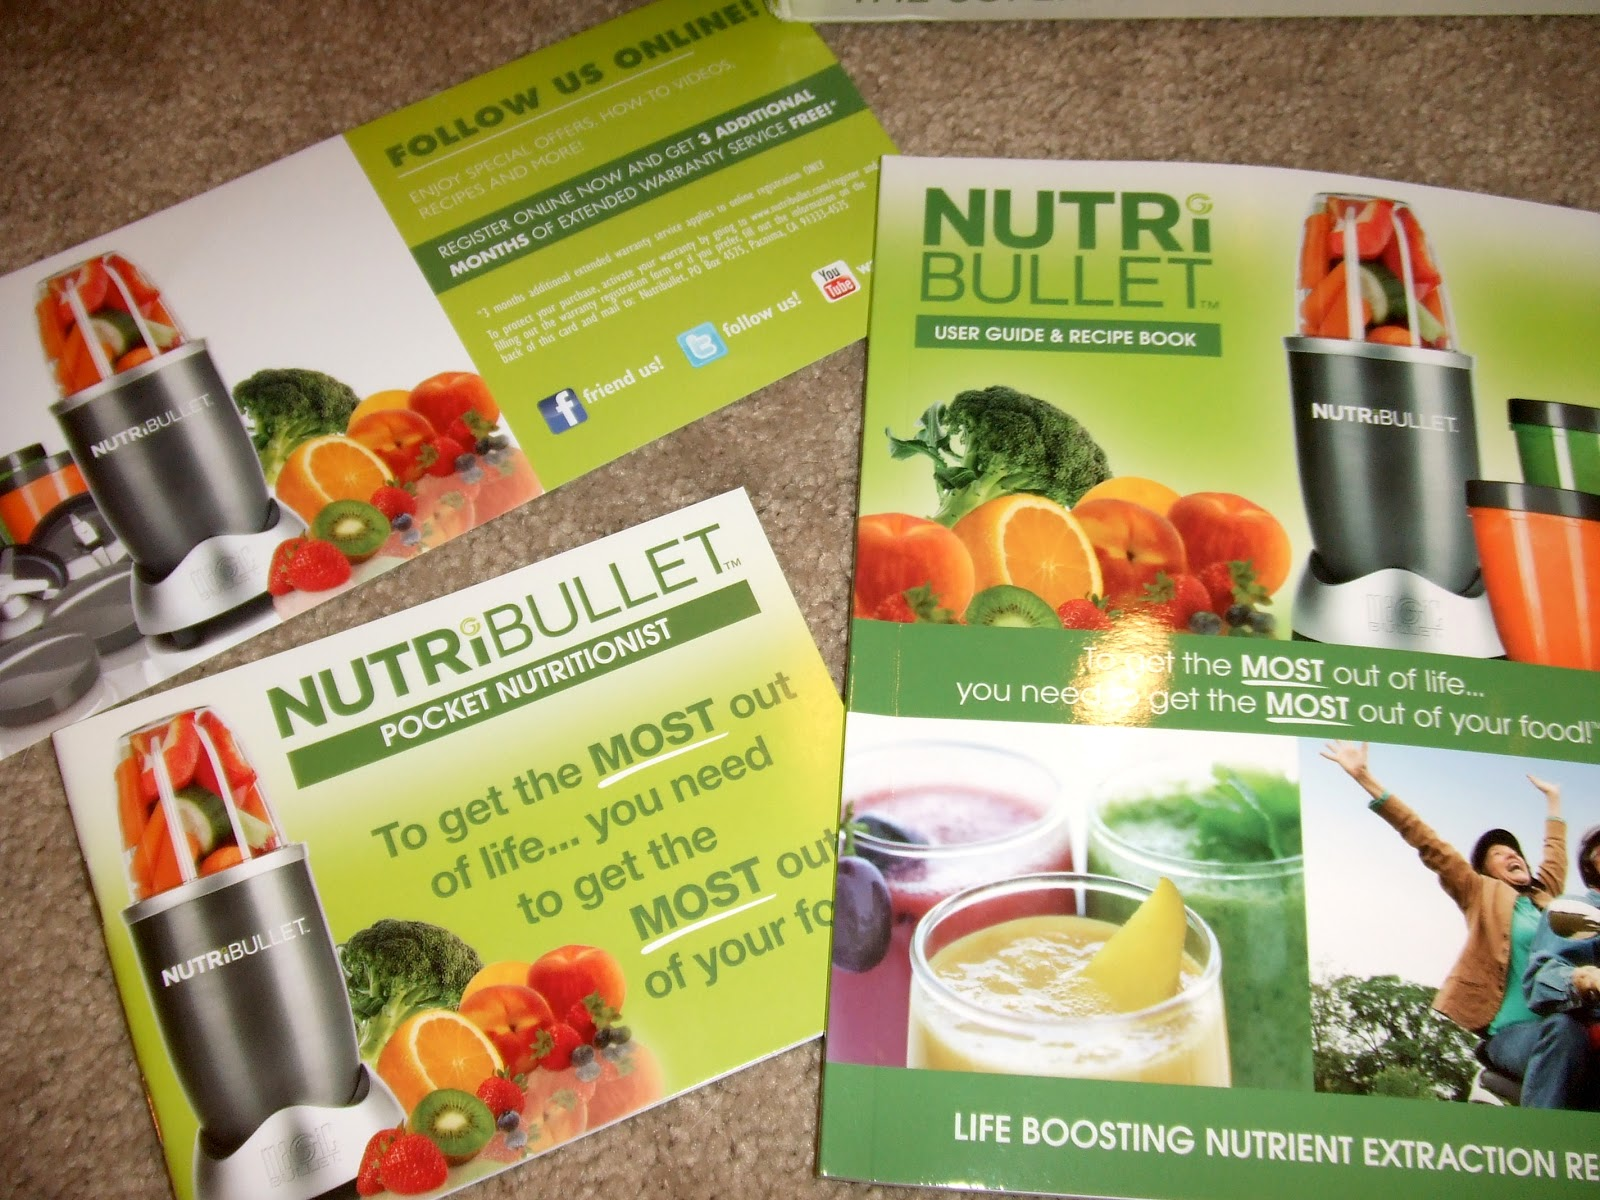 Nutribullet vs Magic Bullet Ask Home Design